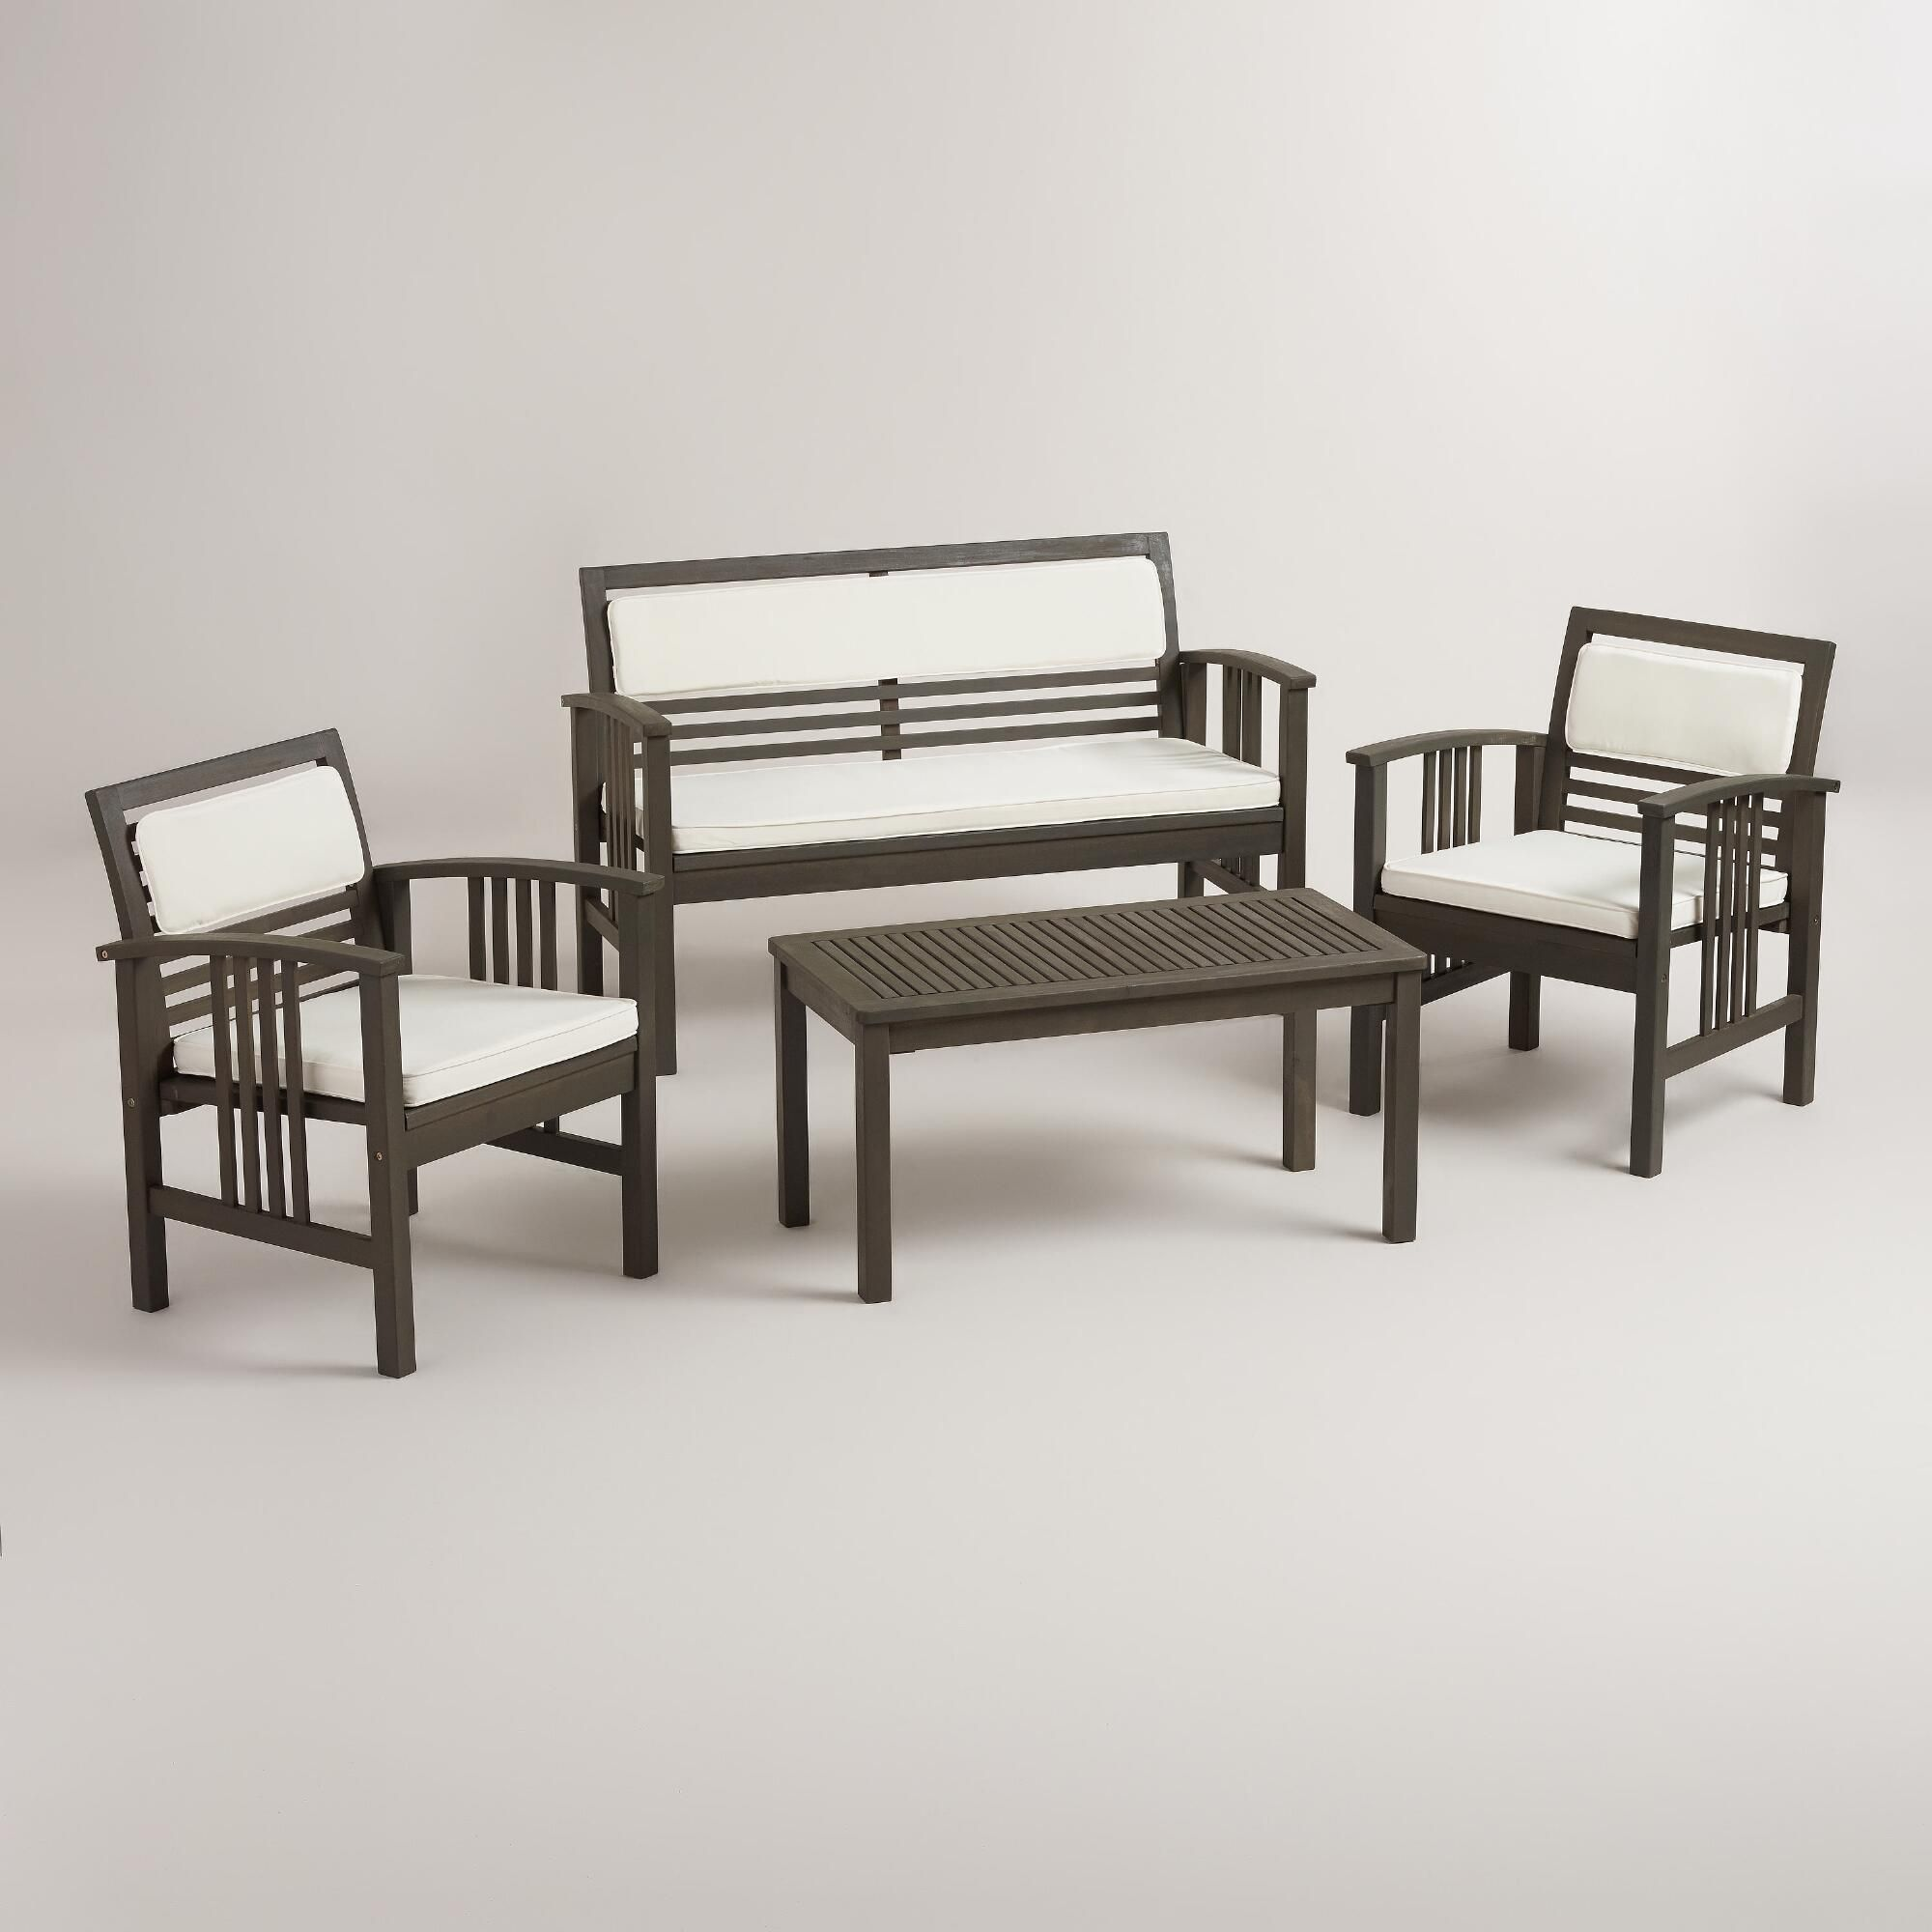 199 belize 4 piece outdoor occasional furniture set world market